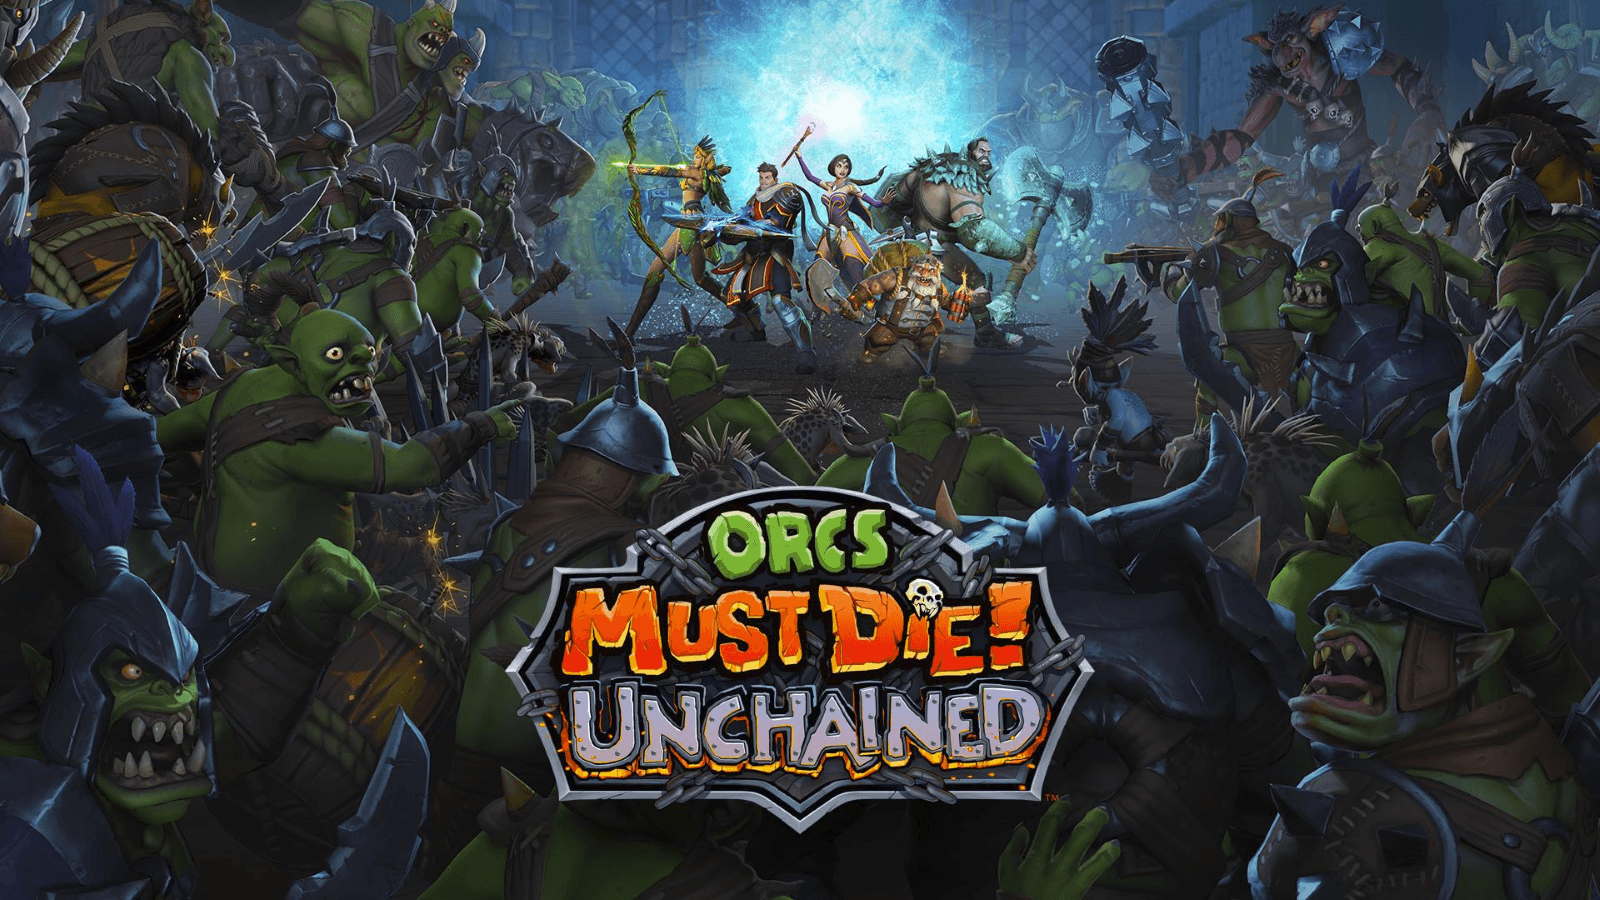 Orcs Must Die! Unchained Open Beta Launches March 29th